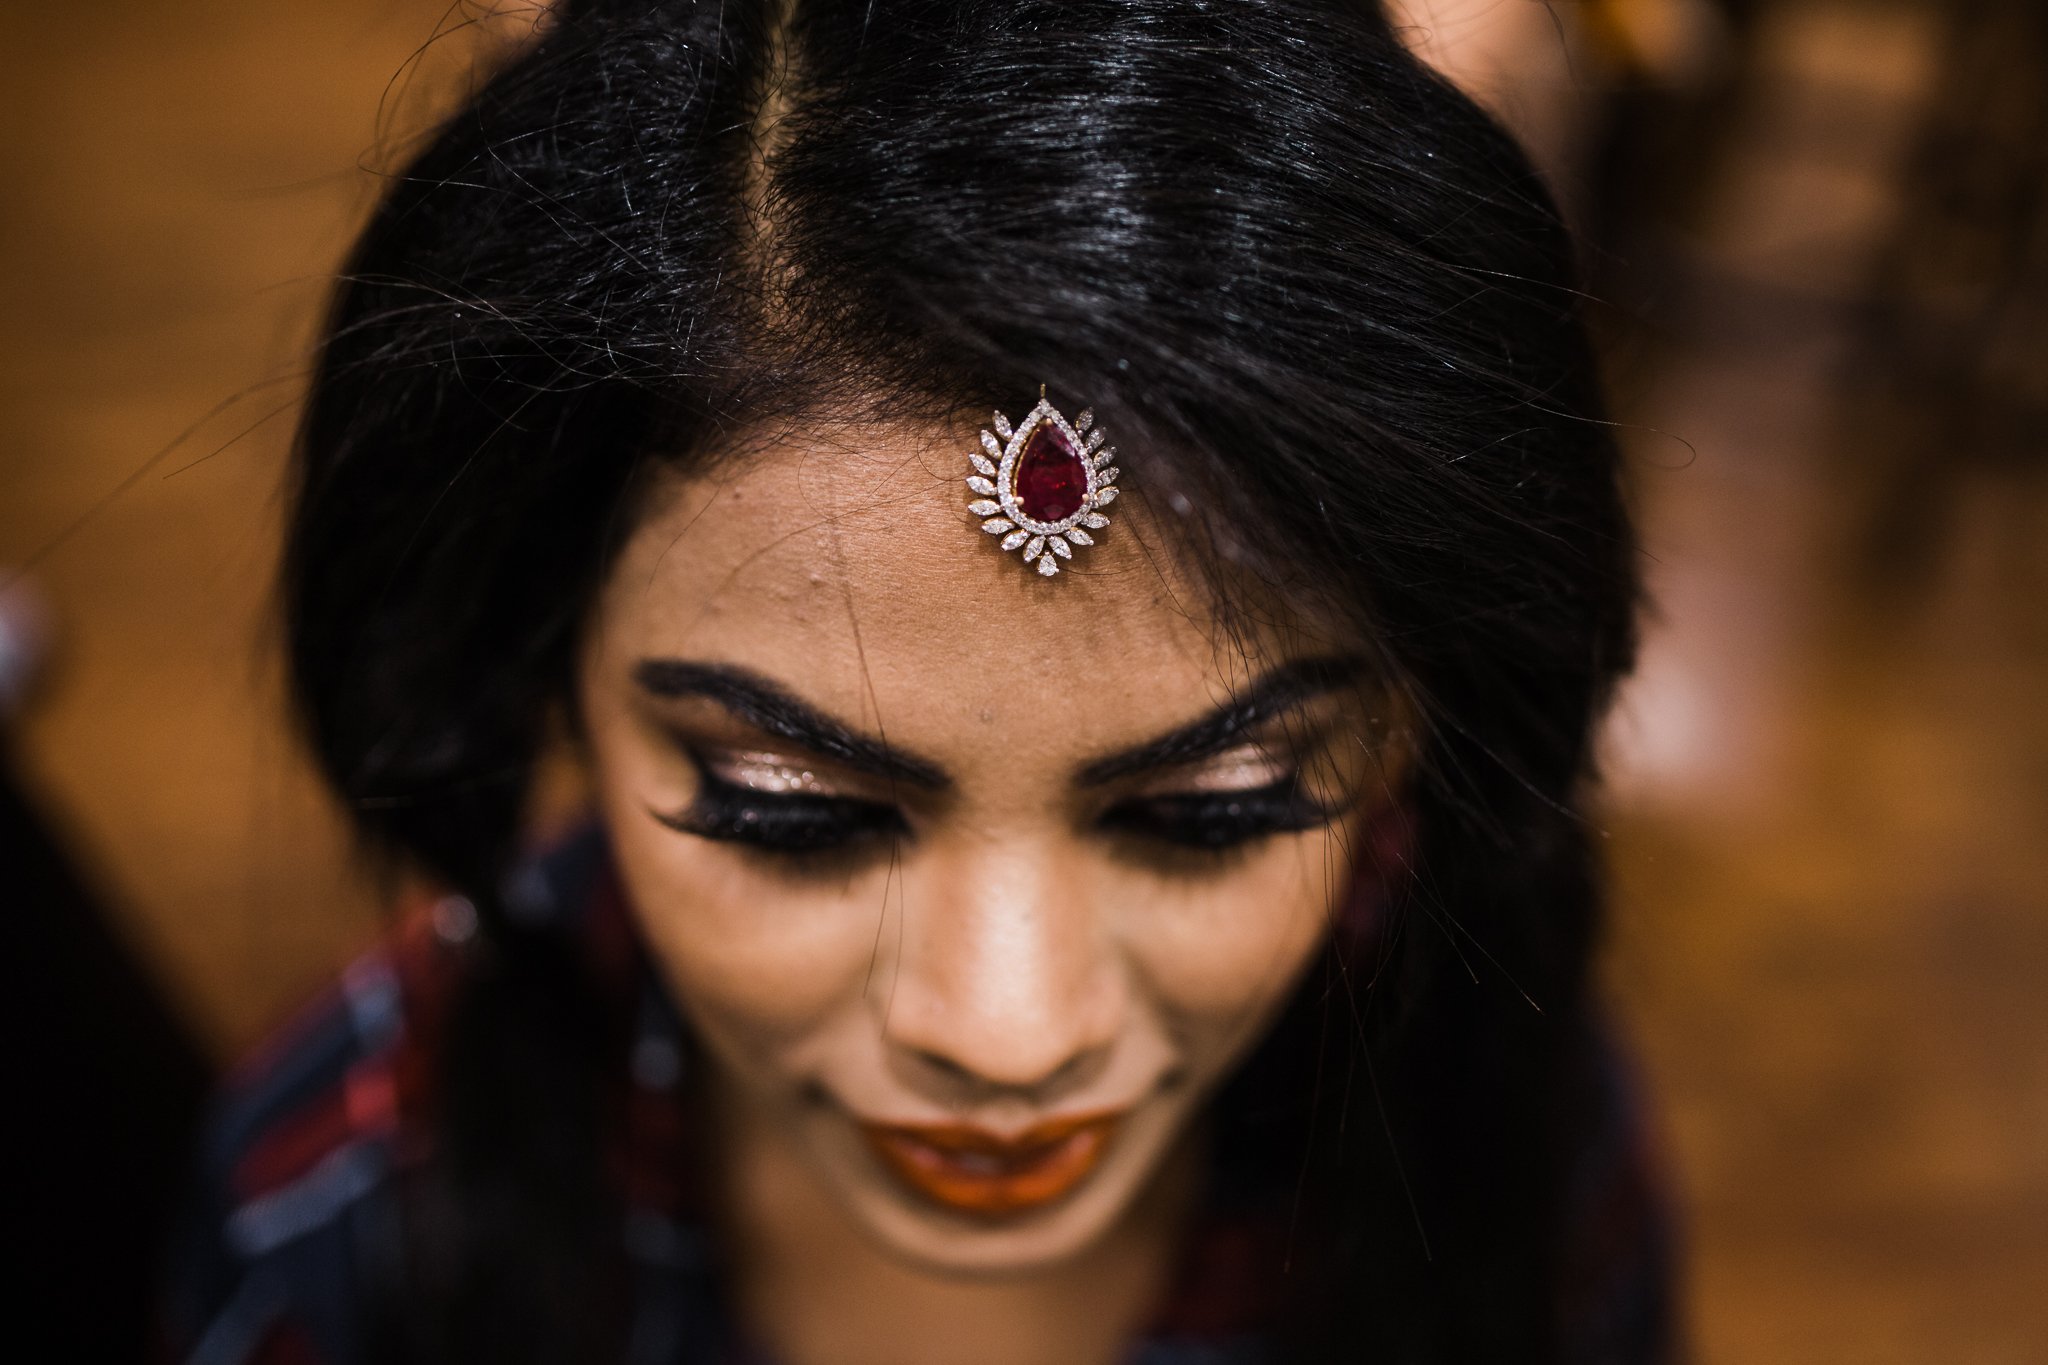 Keerthi and Kishore - Indian Wedding - elizalde photography - Dallas Photographer - South Asian Wedding Photographer - The SPRINGS Event Venue (16 of 226).jpg